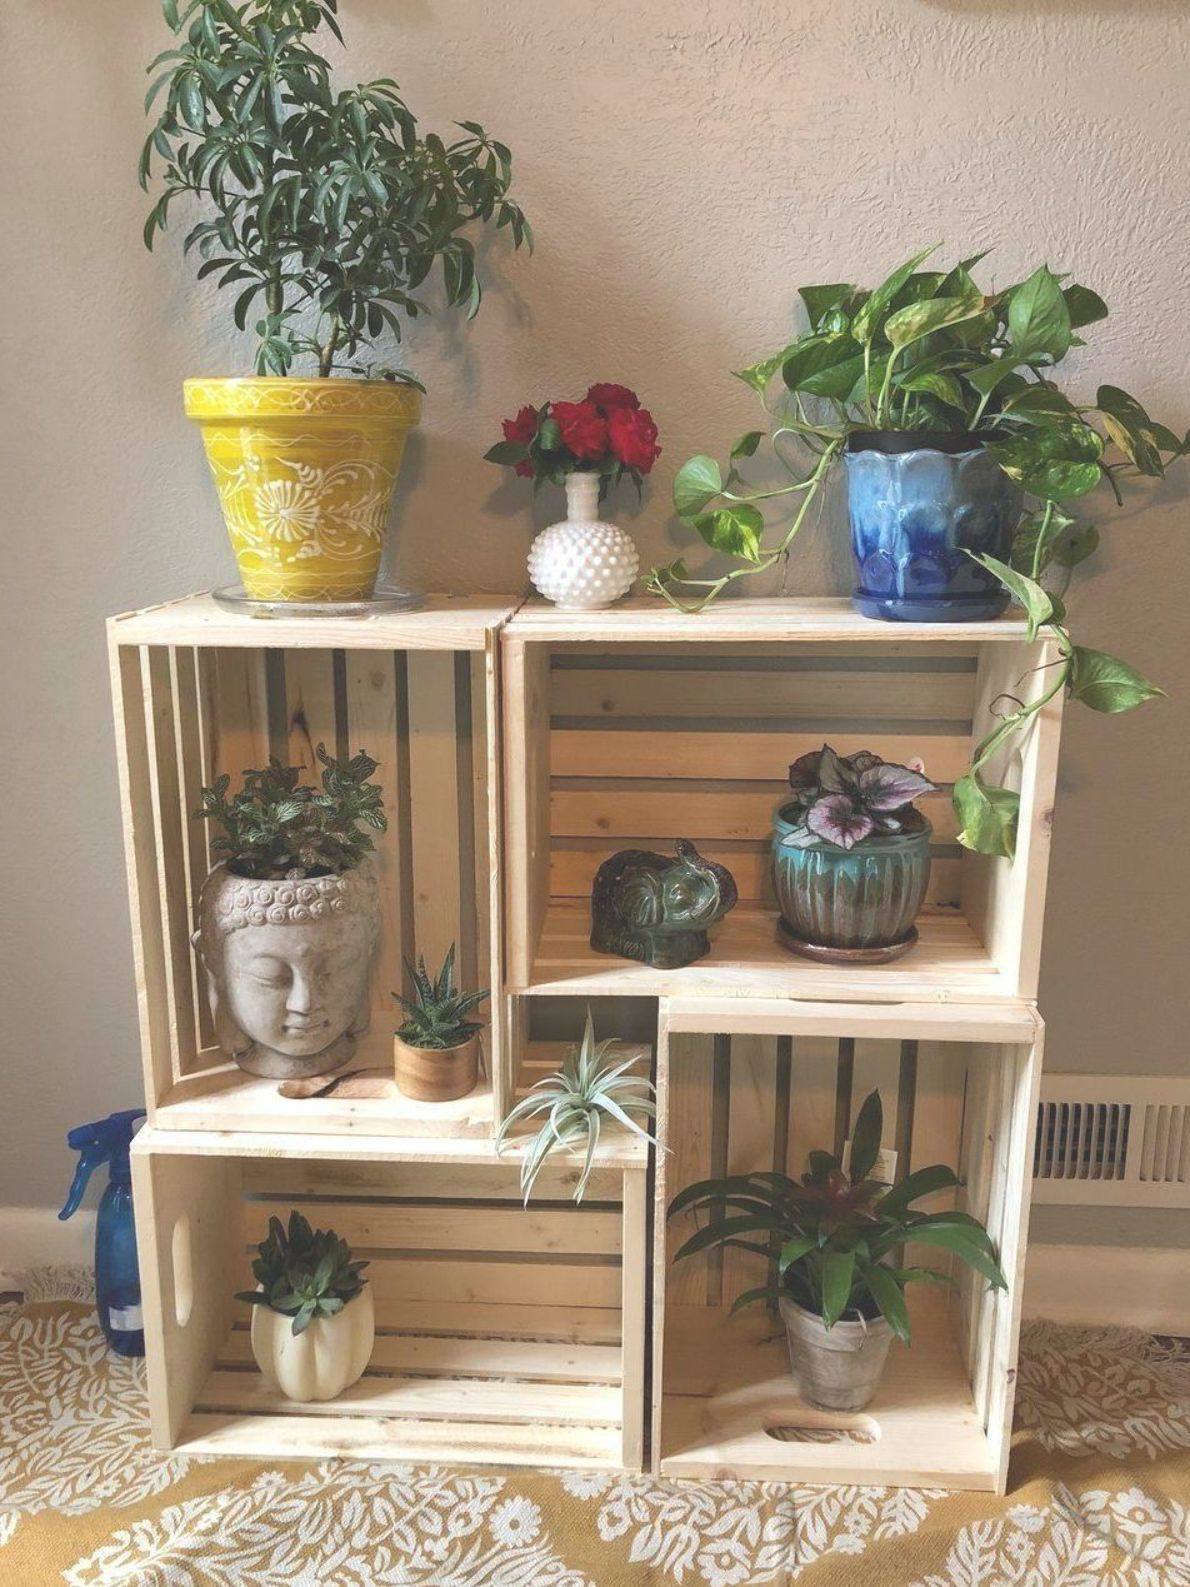 DIY PLANT STAND IDEAS FOR AN OUTDOOR AND INDOOR DECORATION - Unique Diy Plant Stand Ideas To Fill Your Home With Greenery #DIY #PlantStand #Ideas #Plant #stand #Green #Garden #diyplantstand